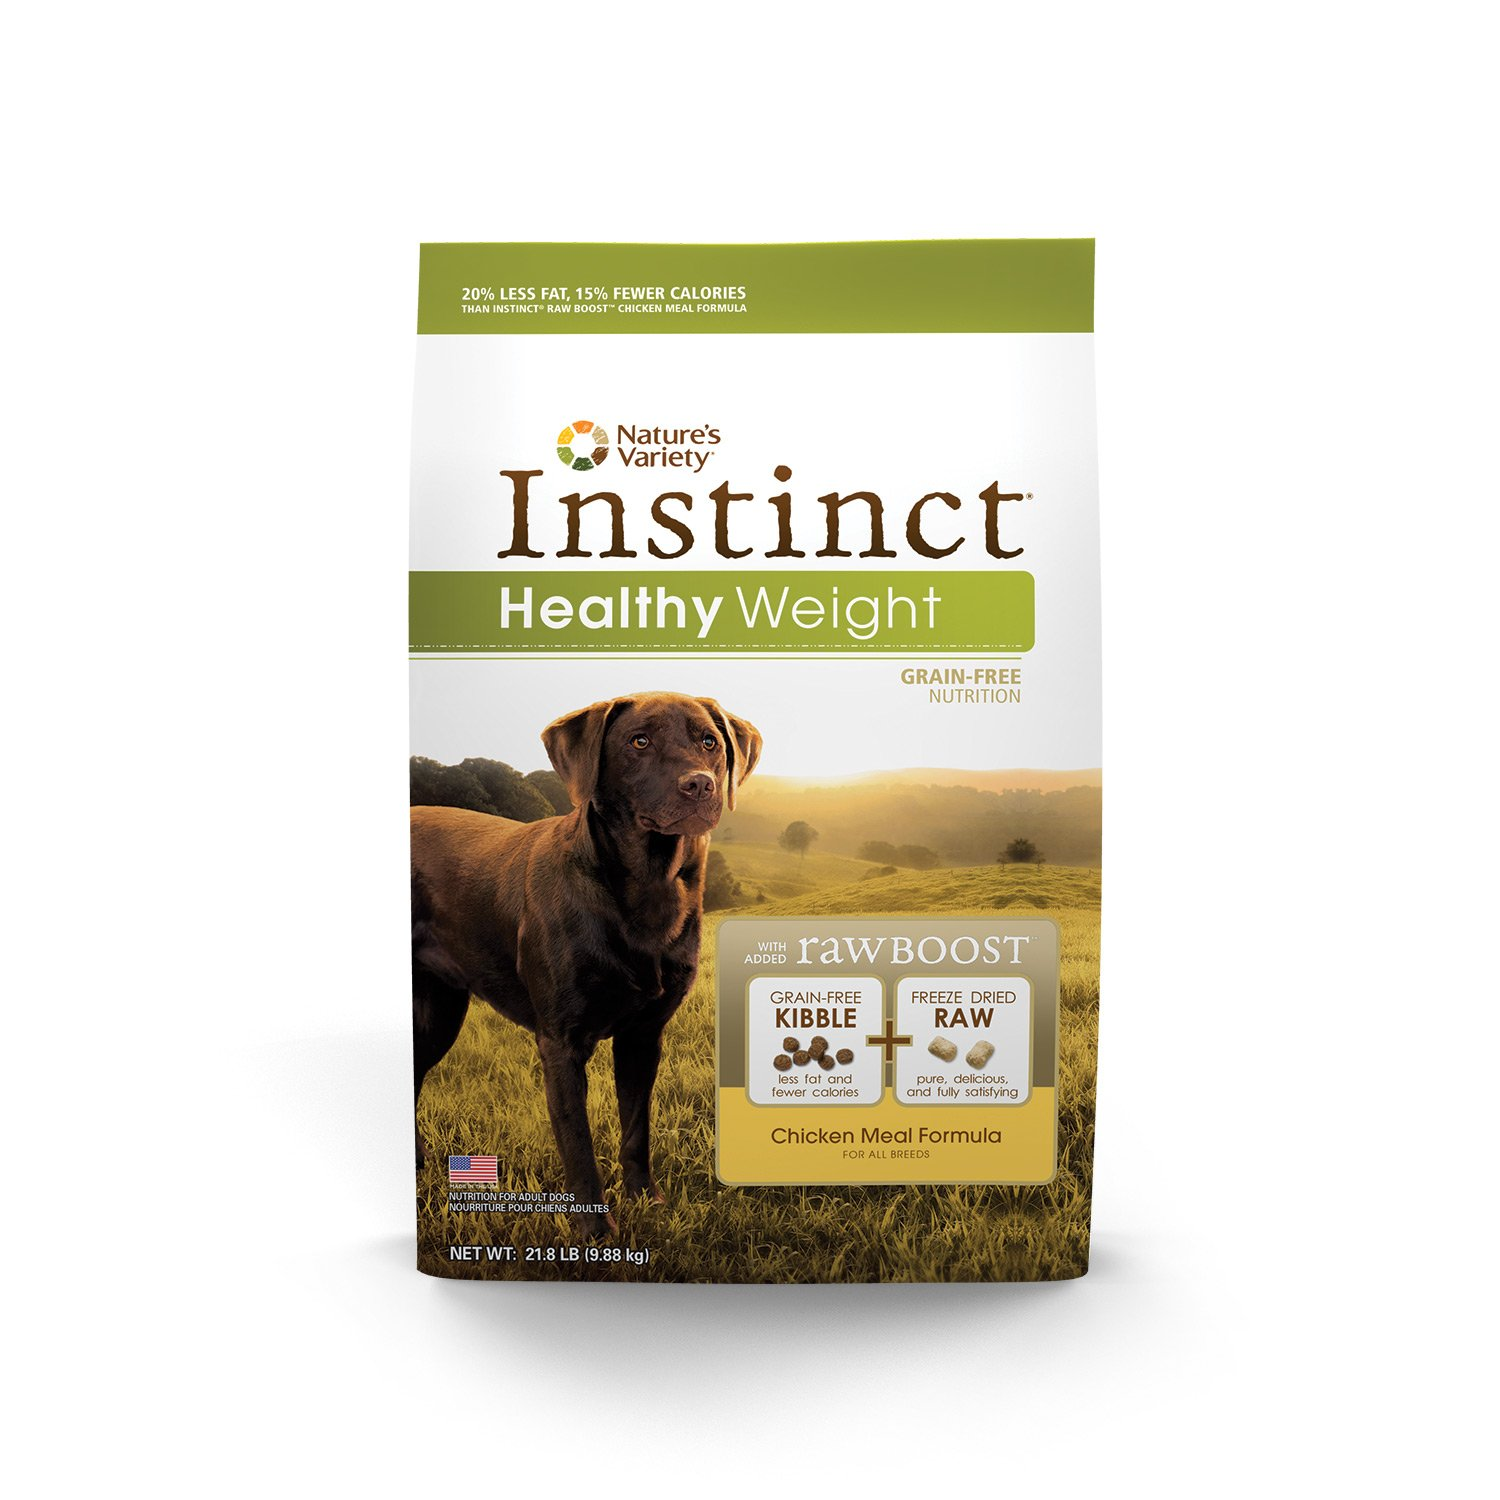 Nature's Variety Grain Free Dry Dog Food